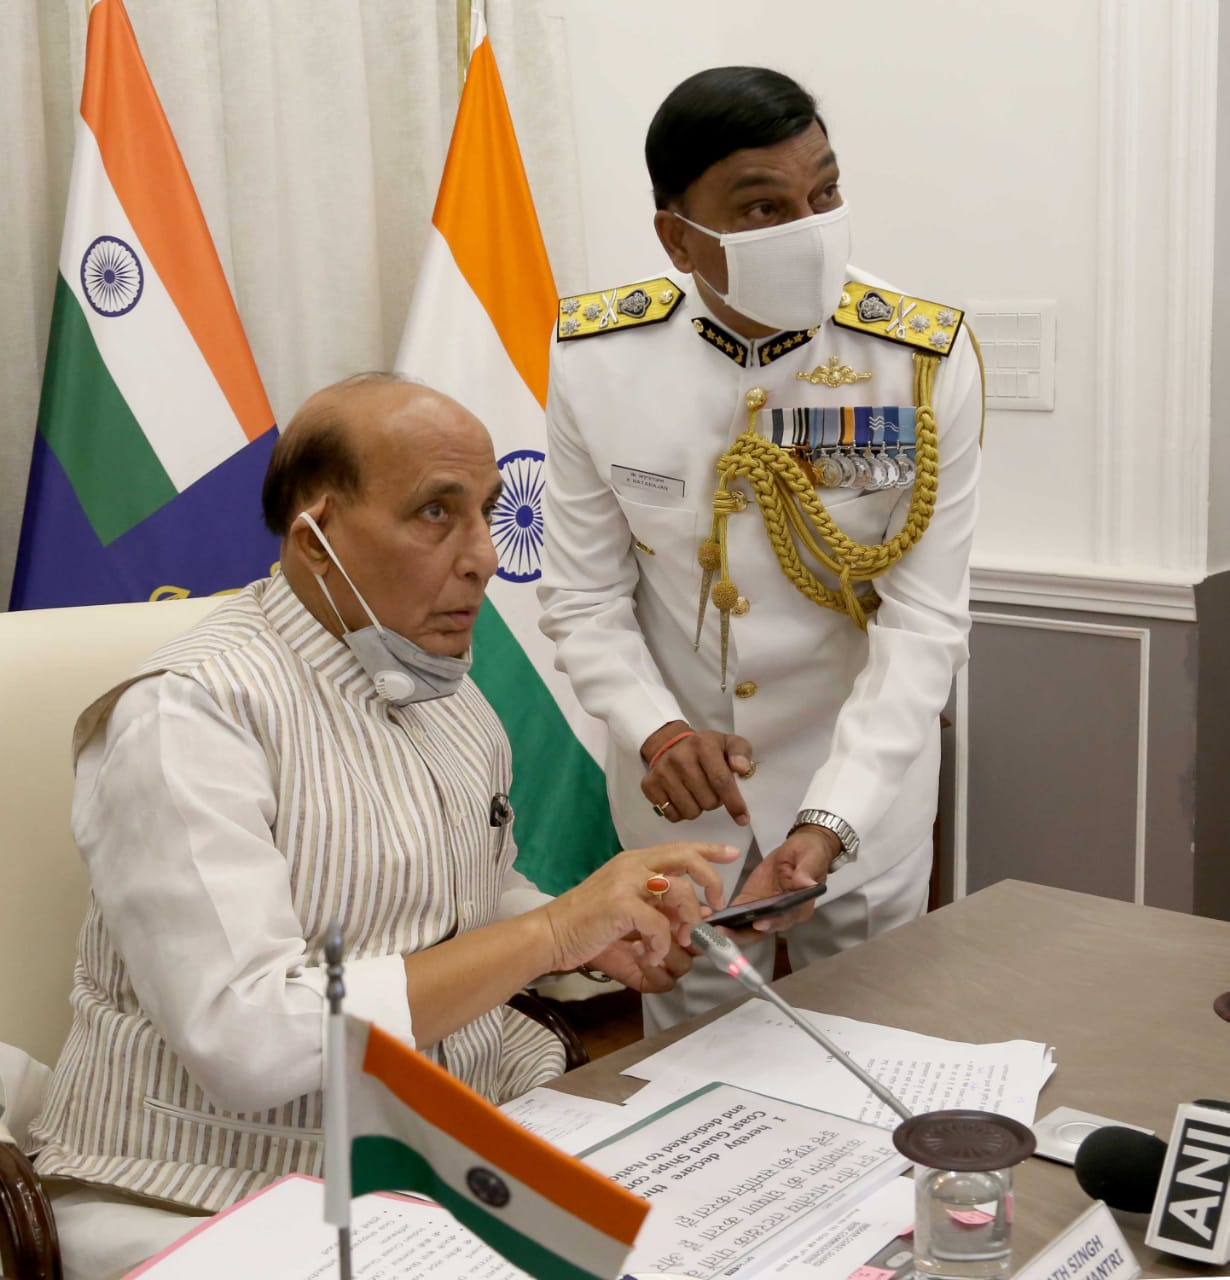 Rajnath Singh commissions ICG's ships digitally; says India is an emerging maritime power